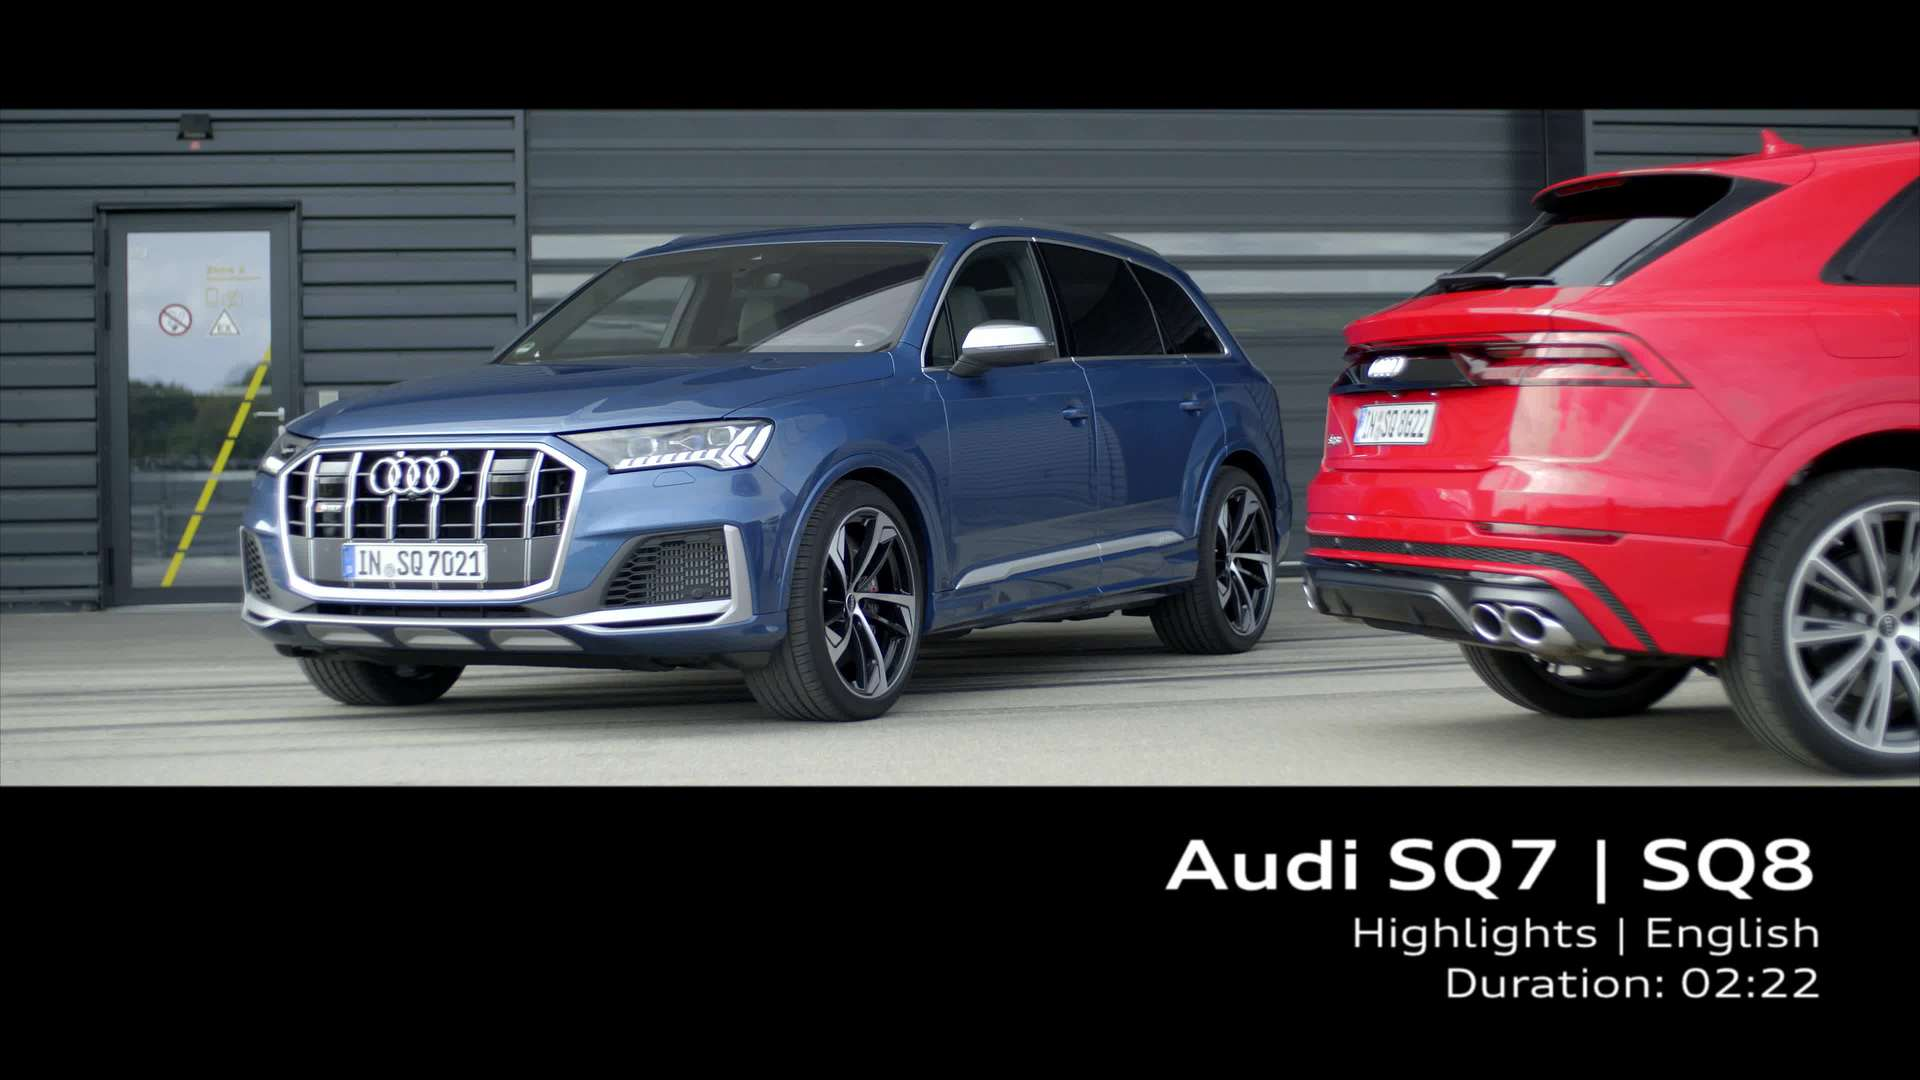 Audi SQ7 / SQ8 – Highlights